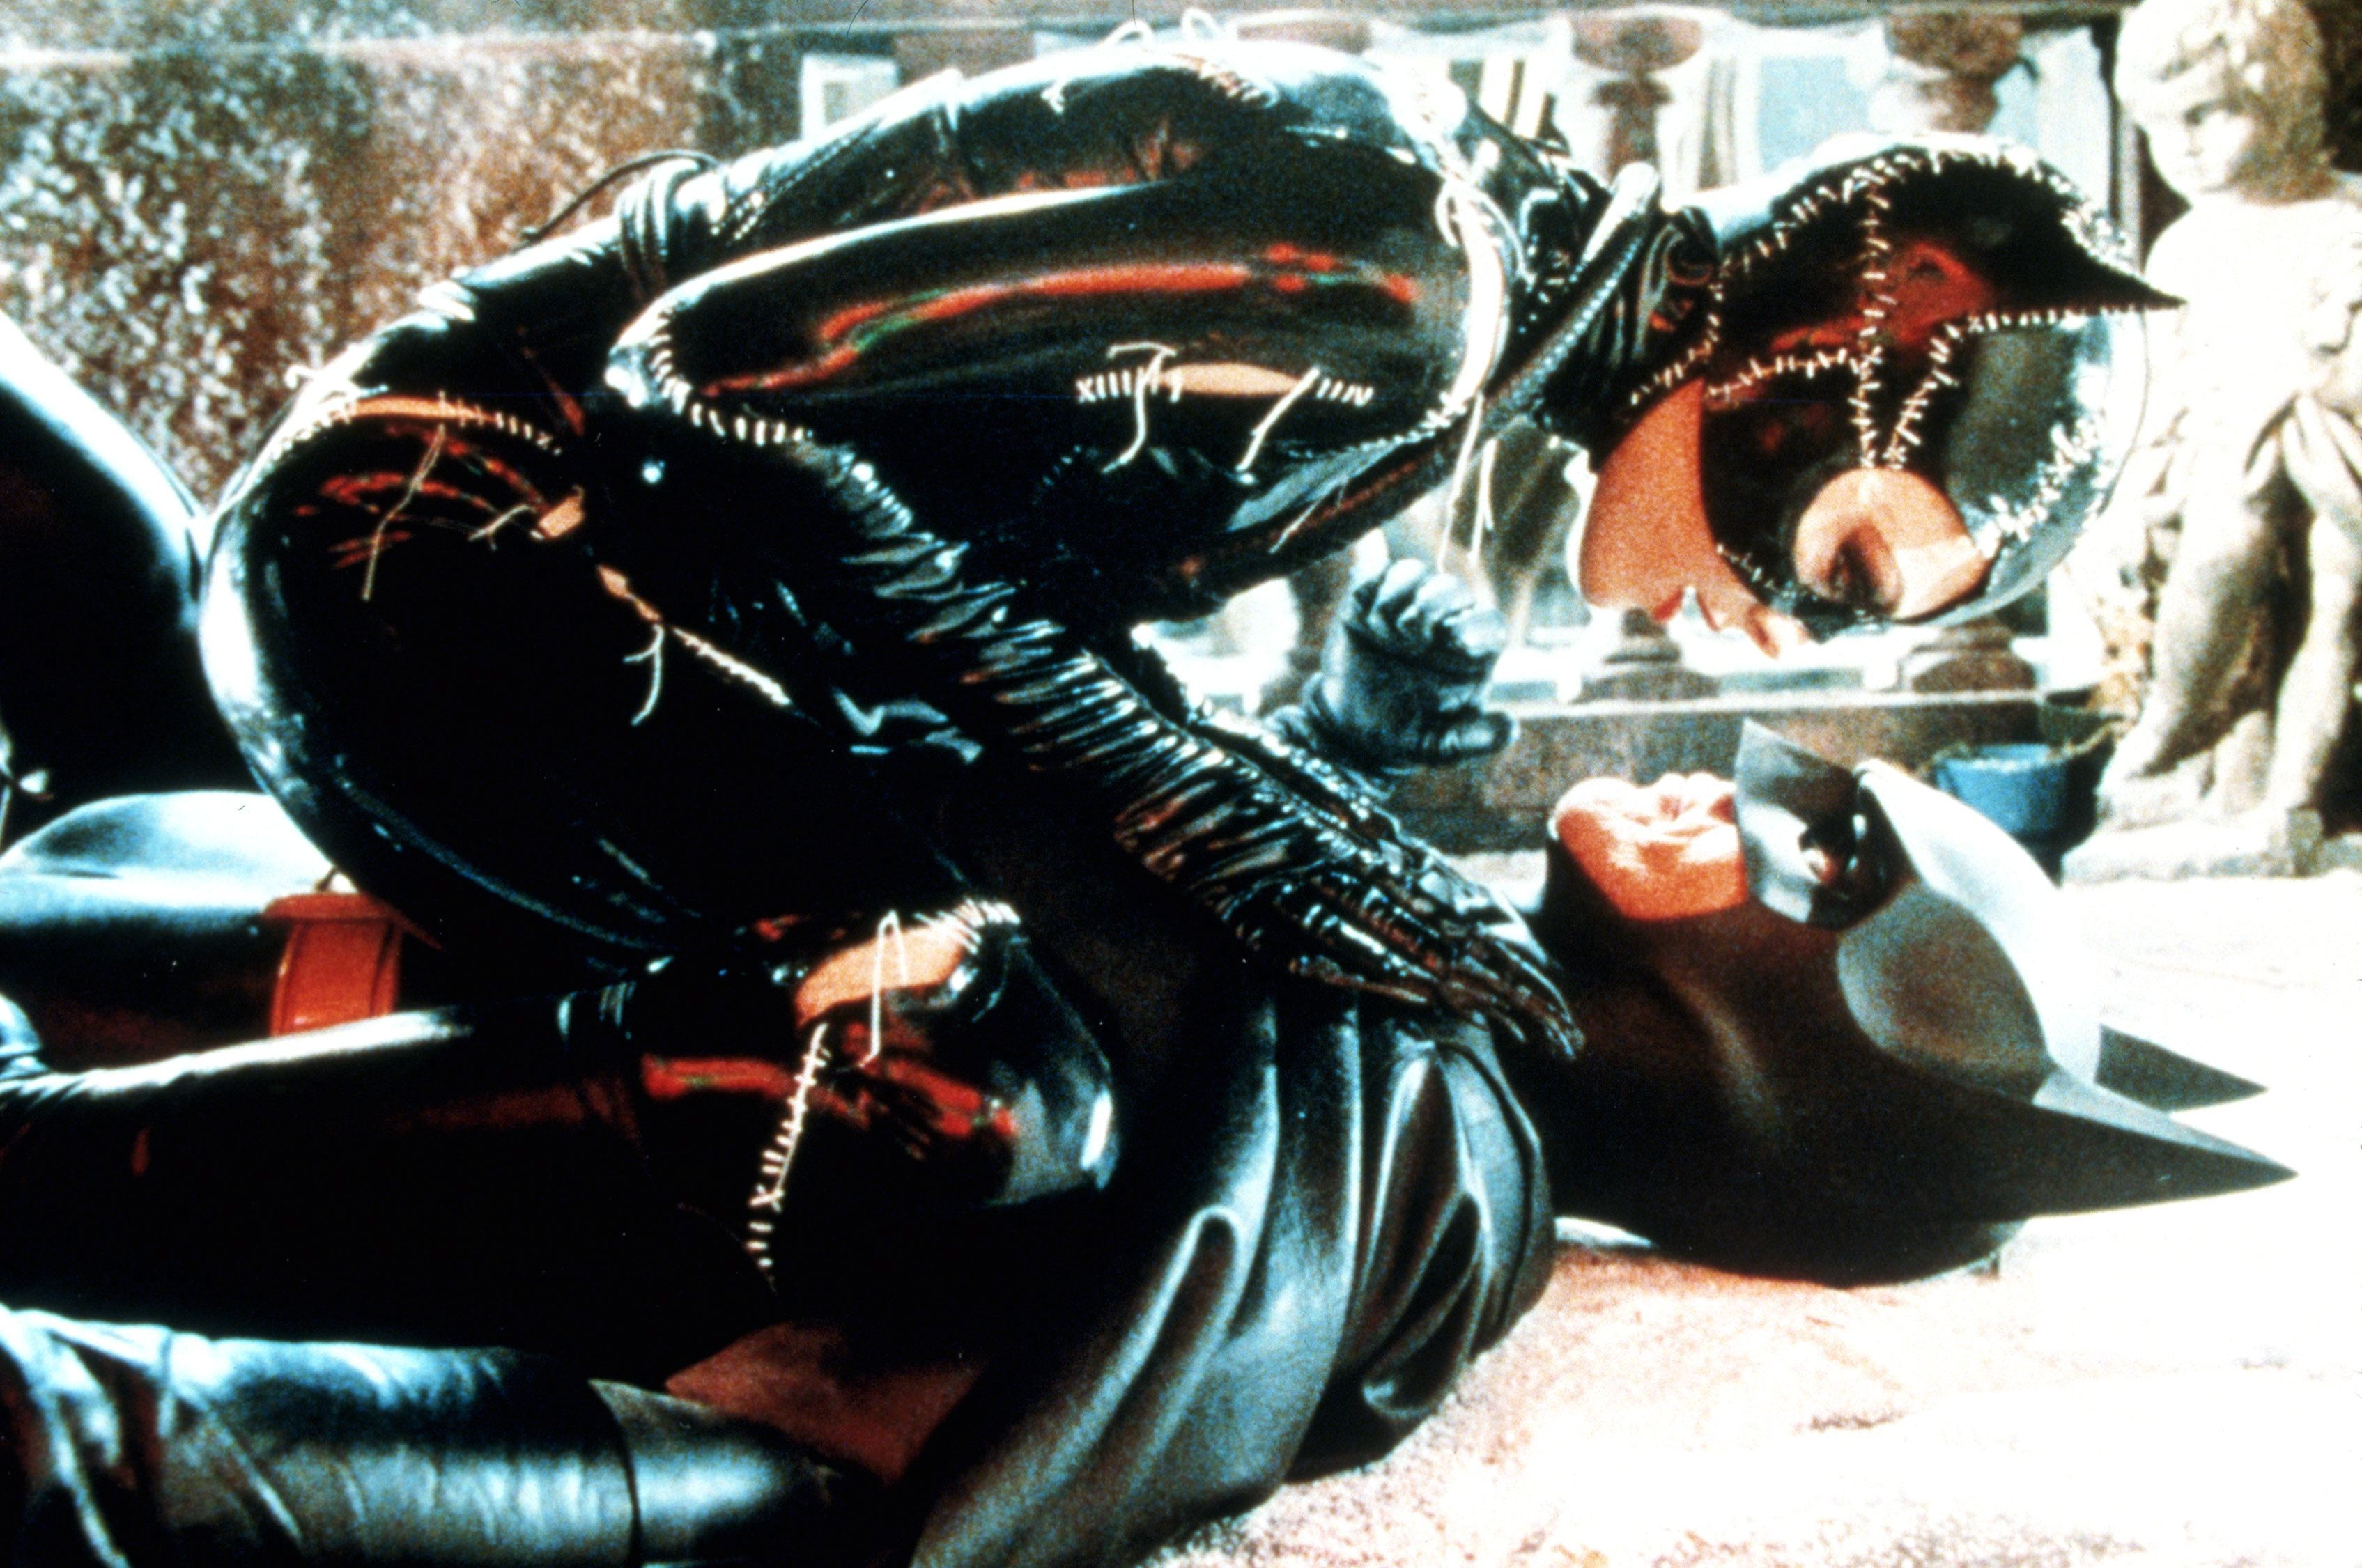 http://img4.wikia.nocookie.net/__cb20121016114243/p__/protagonist/images/e/eb/513340-96639_batman_returns_movie_stills_ccbn_24_122_526l.jpg